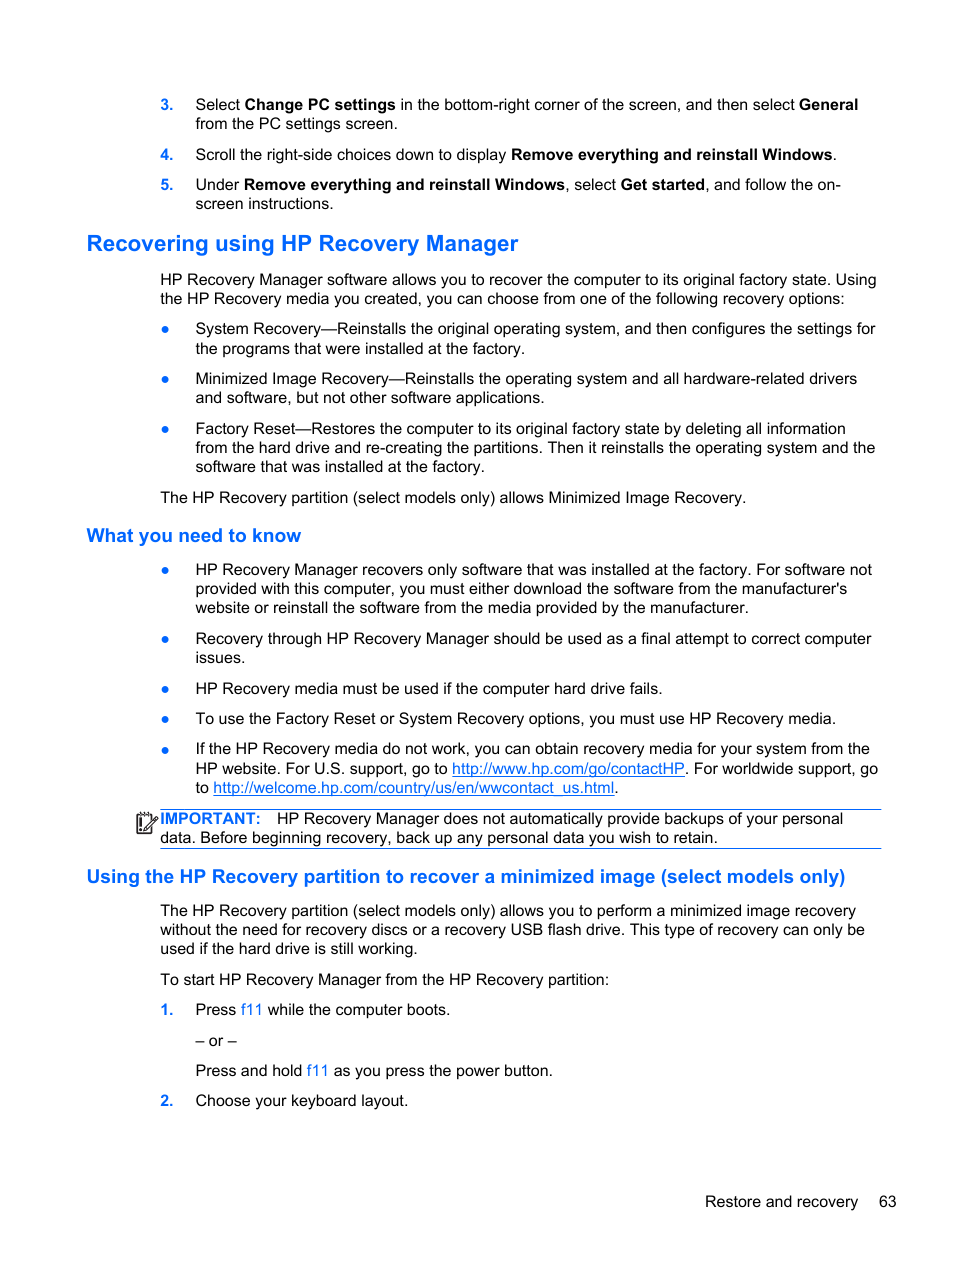 Recovering using hp recovery manager, What you need to know